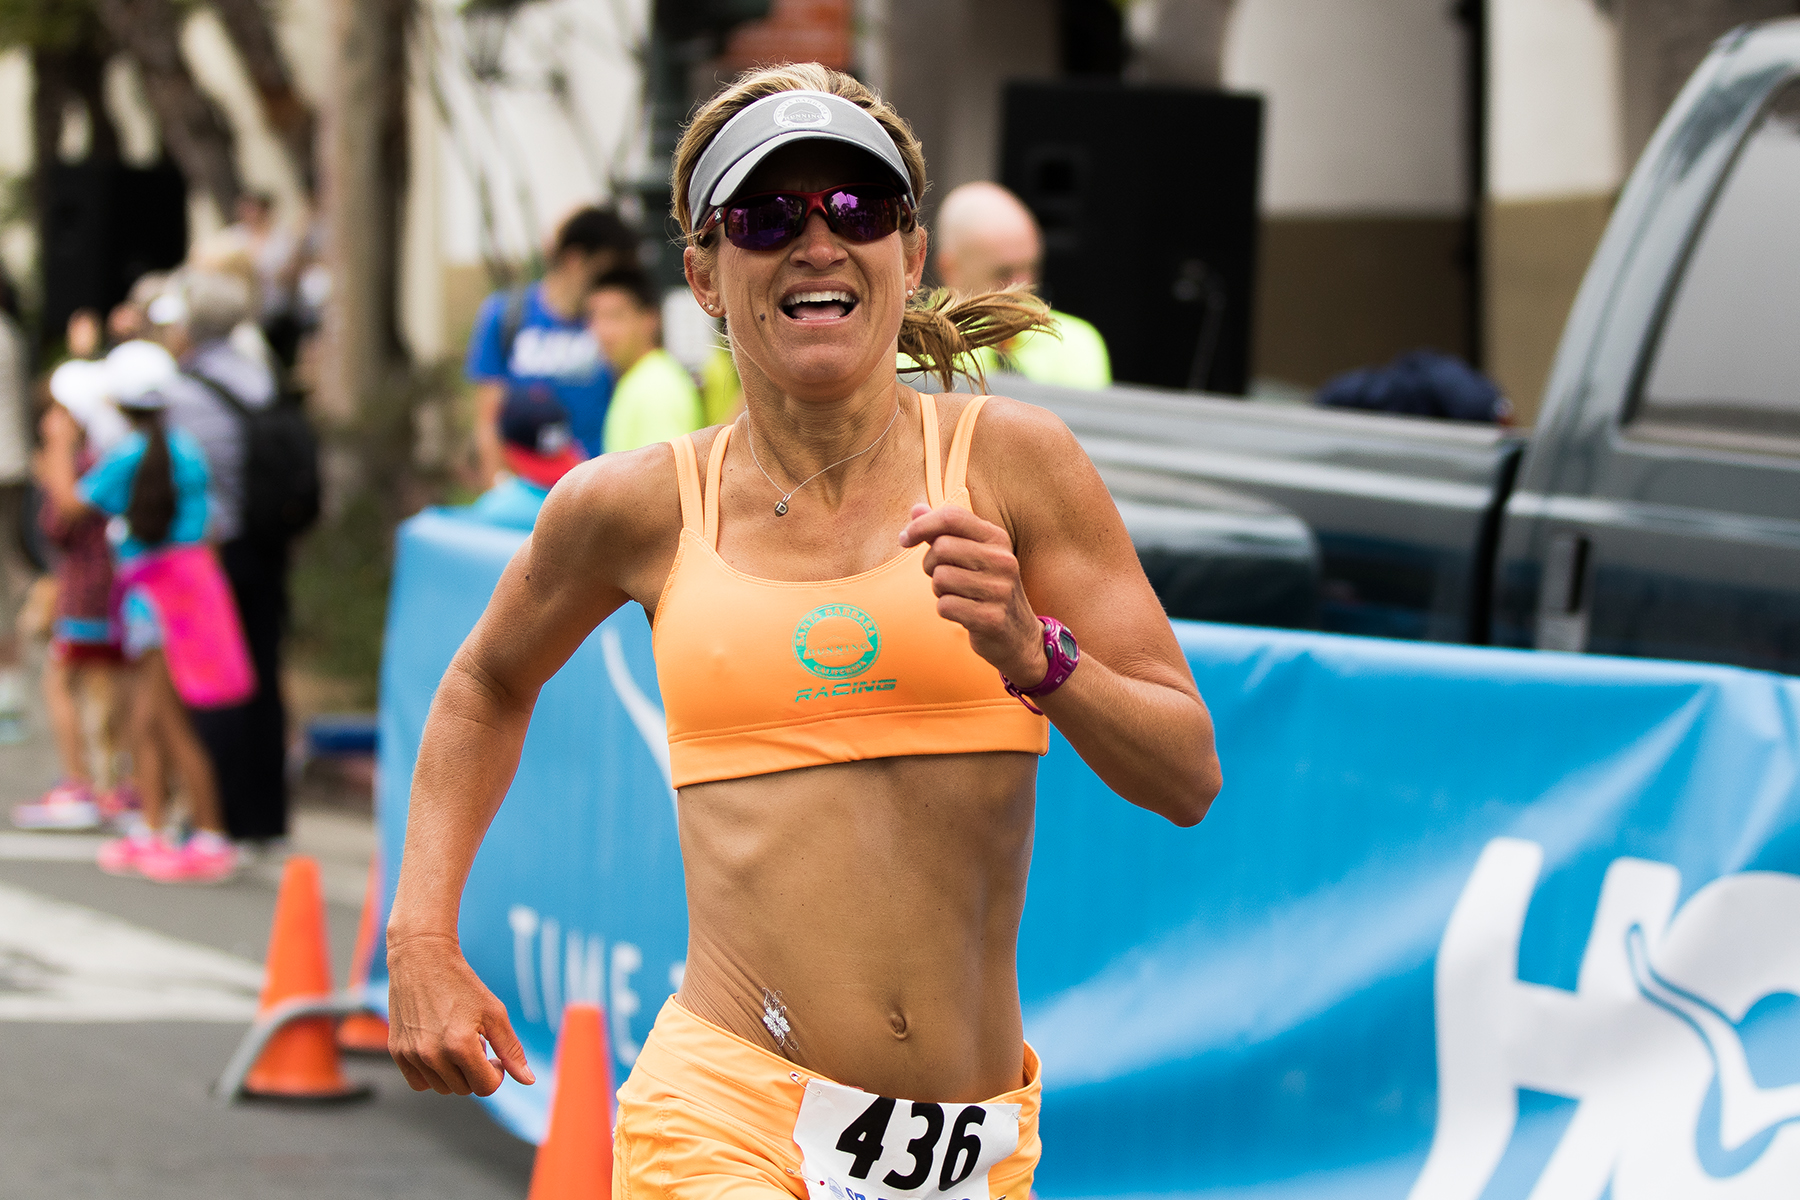 With a time of 5:19, Desa Mandarino, 45, of Santa Barbara finished first in the women's 40-49 age group.